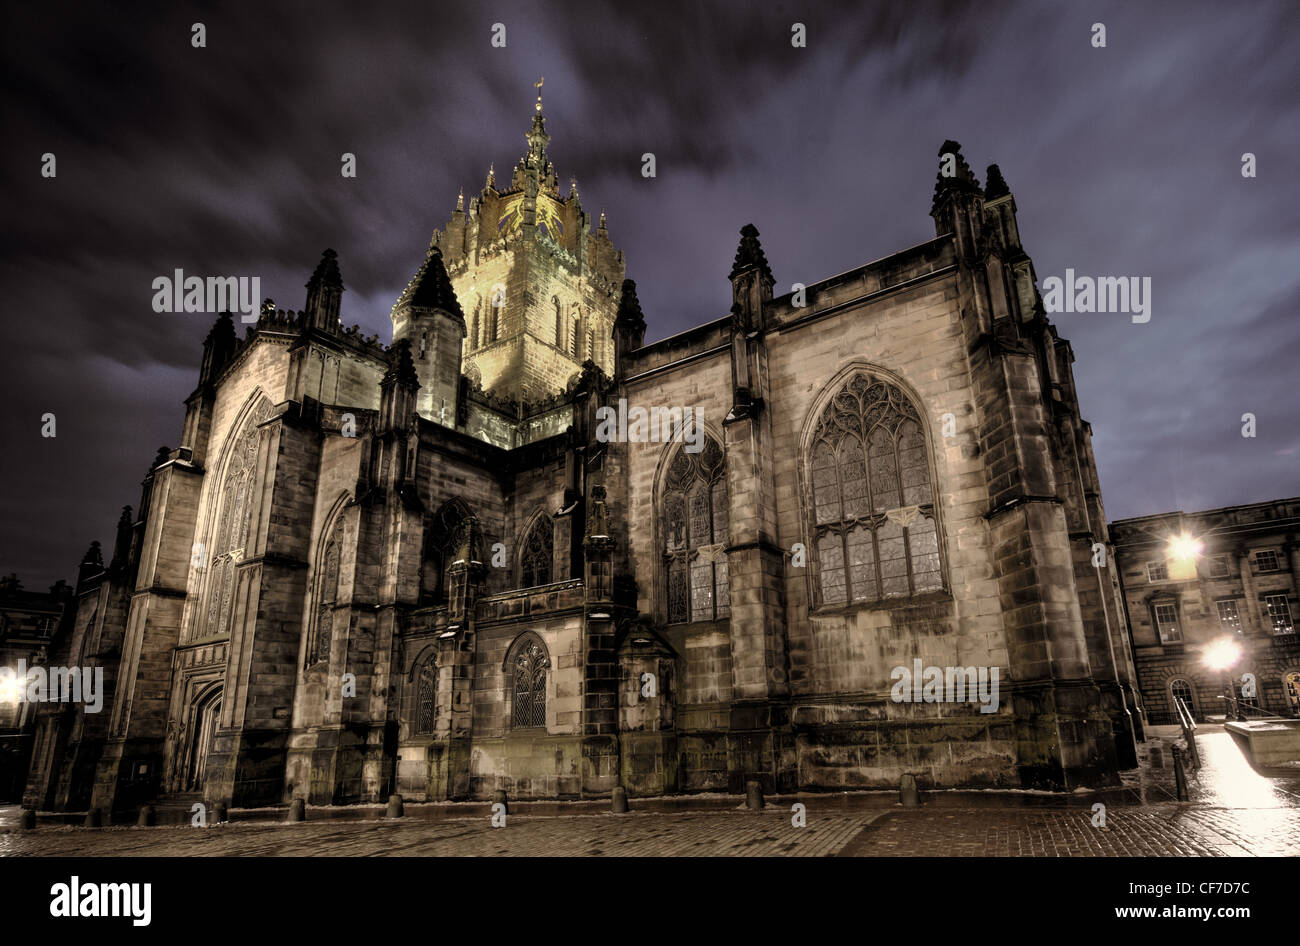 St saint Giles Cathedral High Kirk of Edinburgh at dusk, Scotland  @HotpixUK - Stock Image